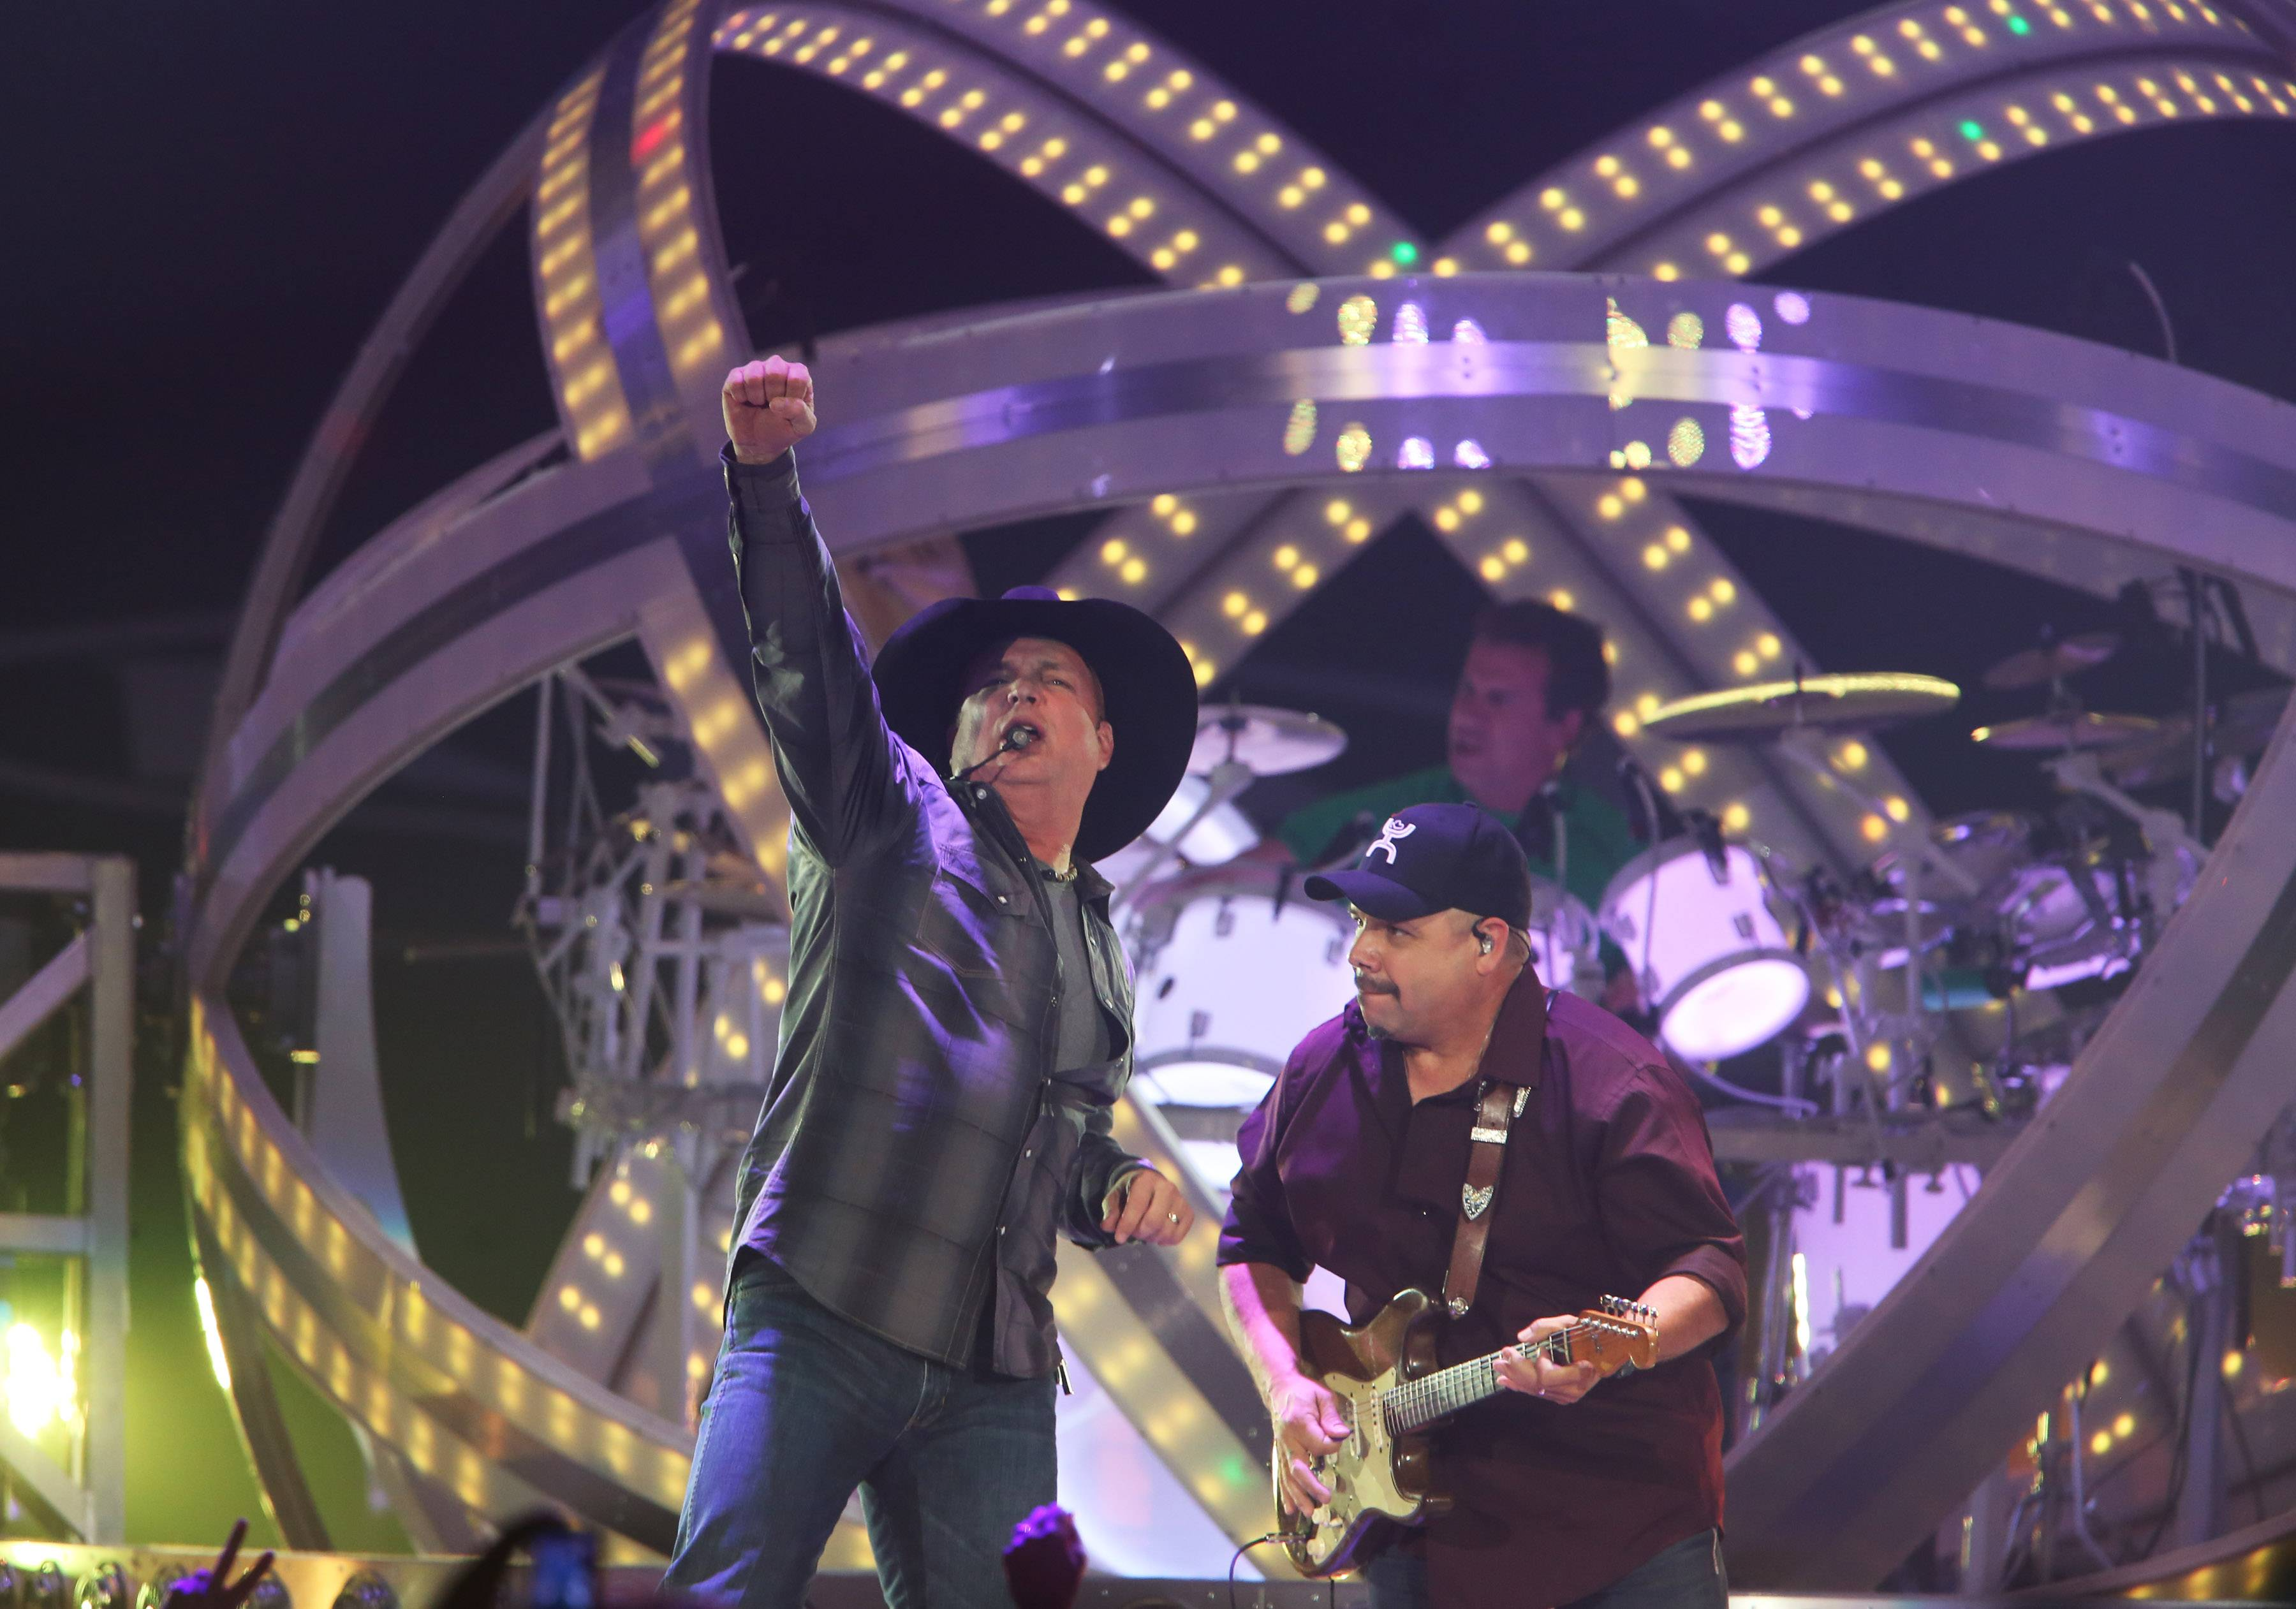 Garth Brooks feels love in 1st show back at Rosemont's Allstate Arena